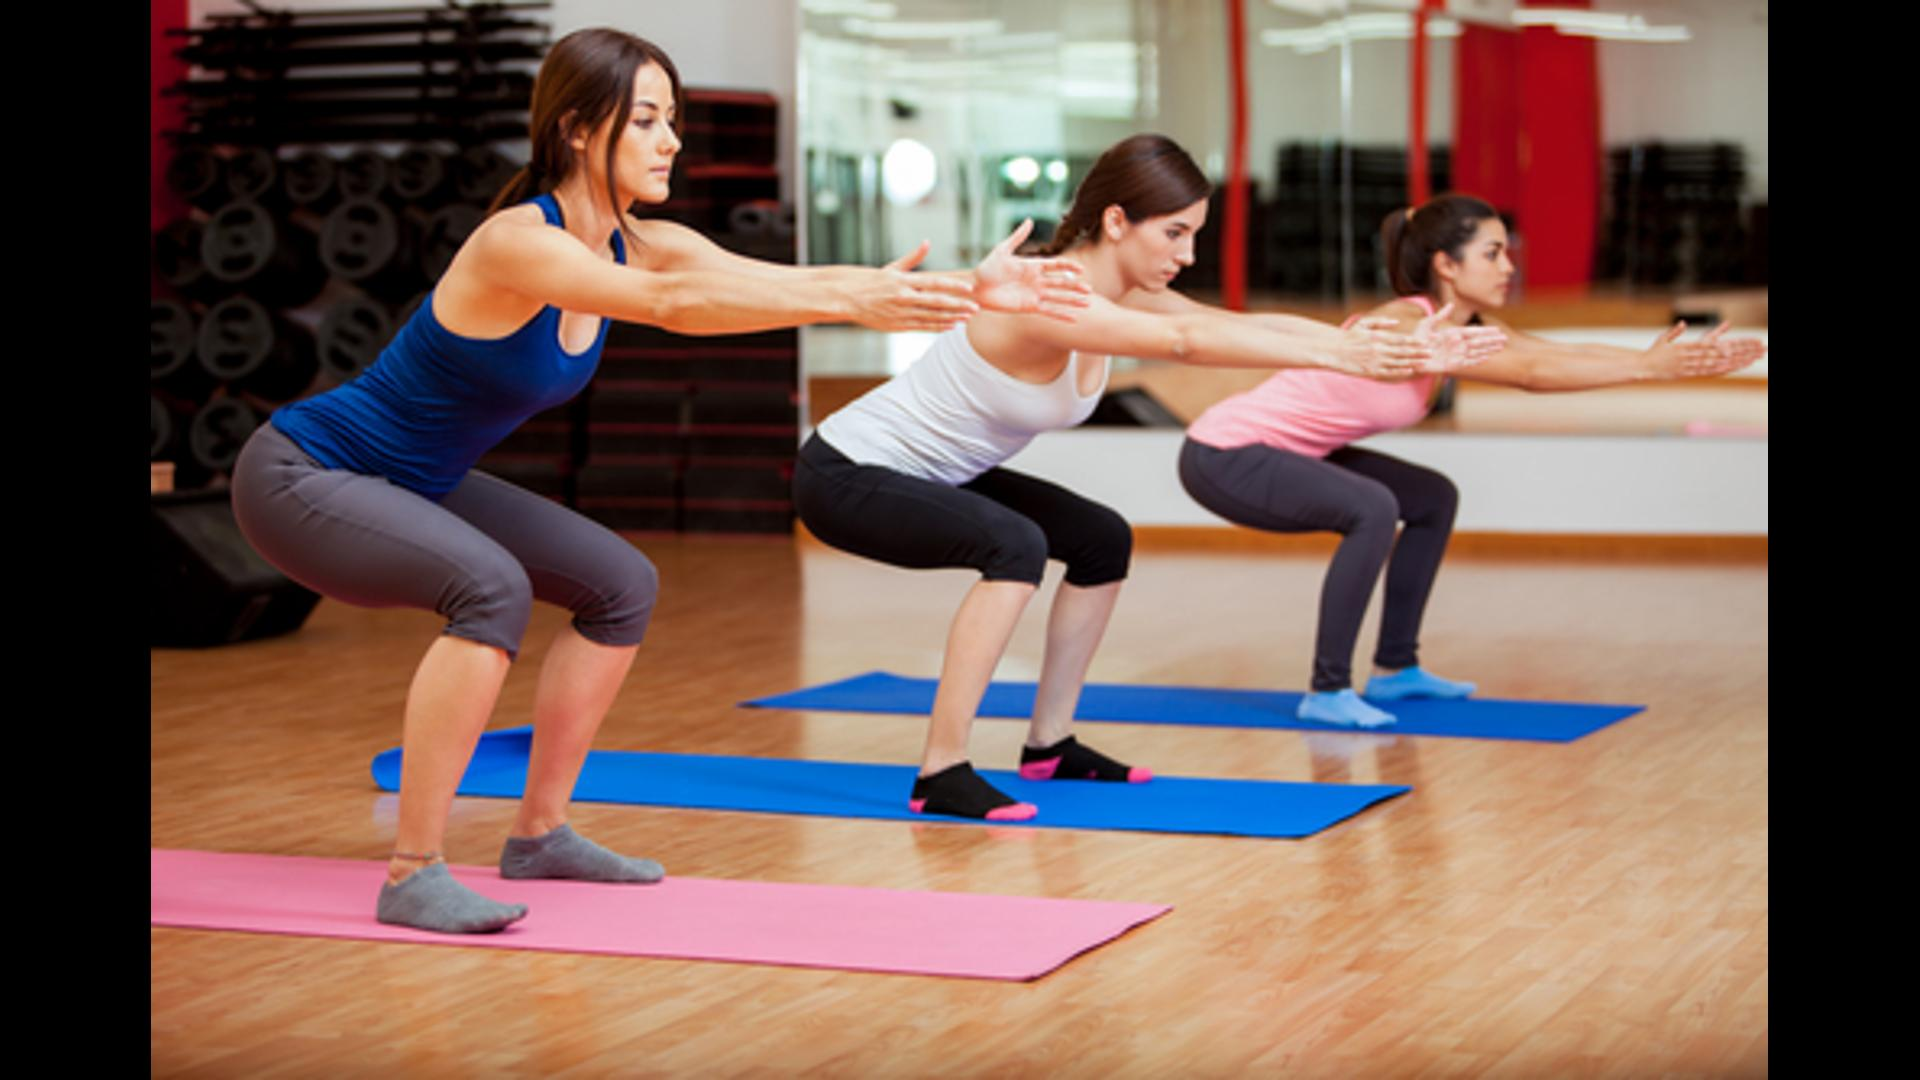 Lower Back Pain: Exercises That Will Alleviate The Discomfort